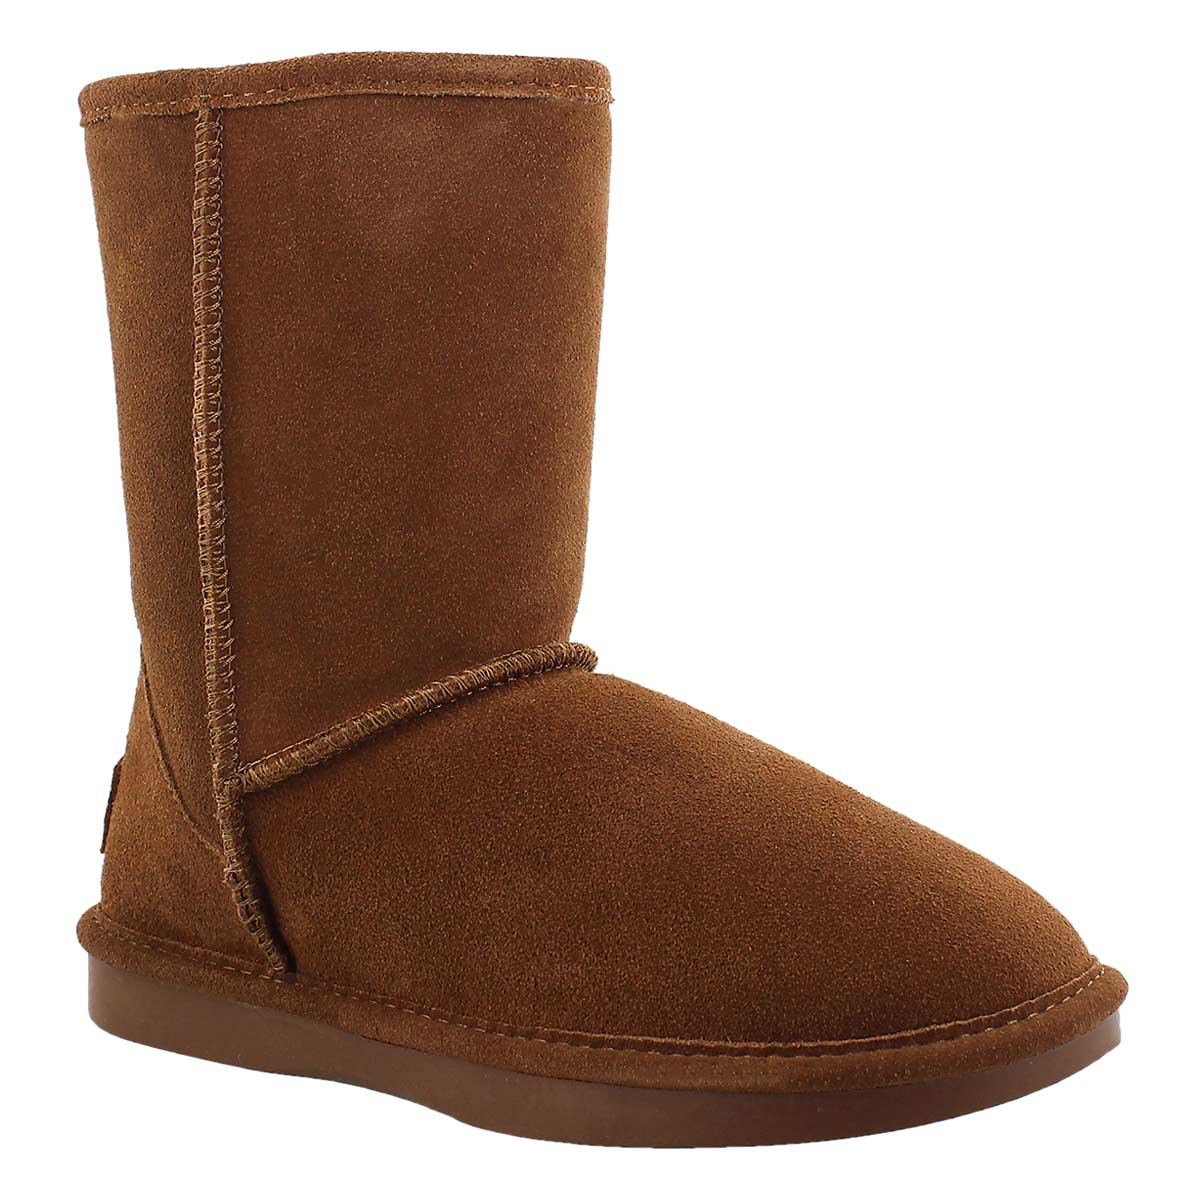 Lds Smocs 5 spice mid suede boot